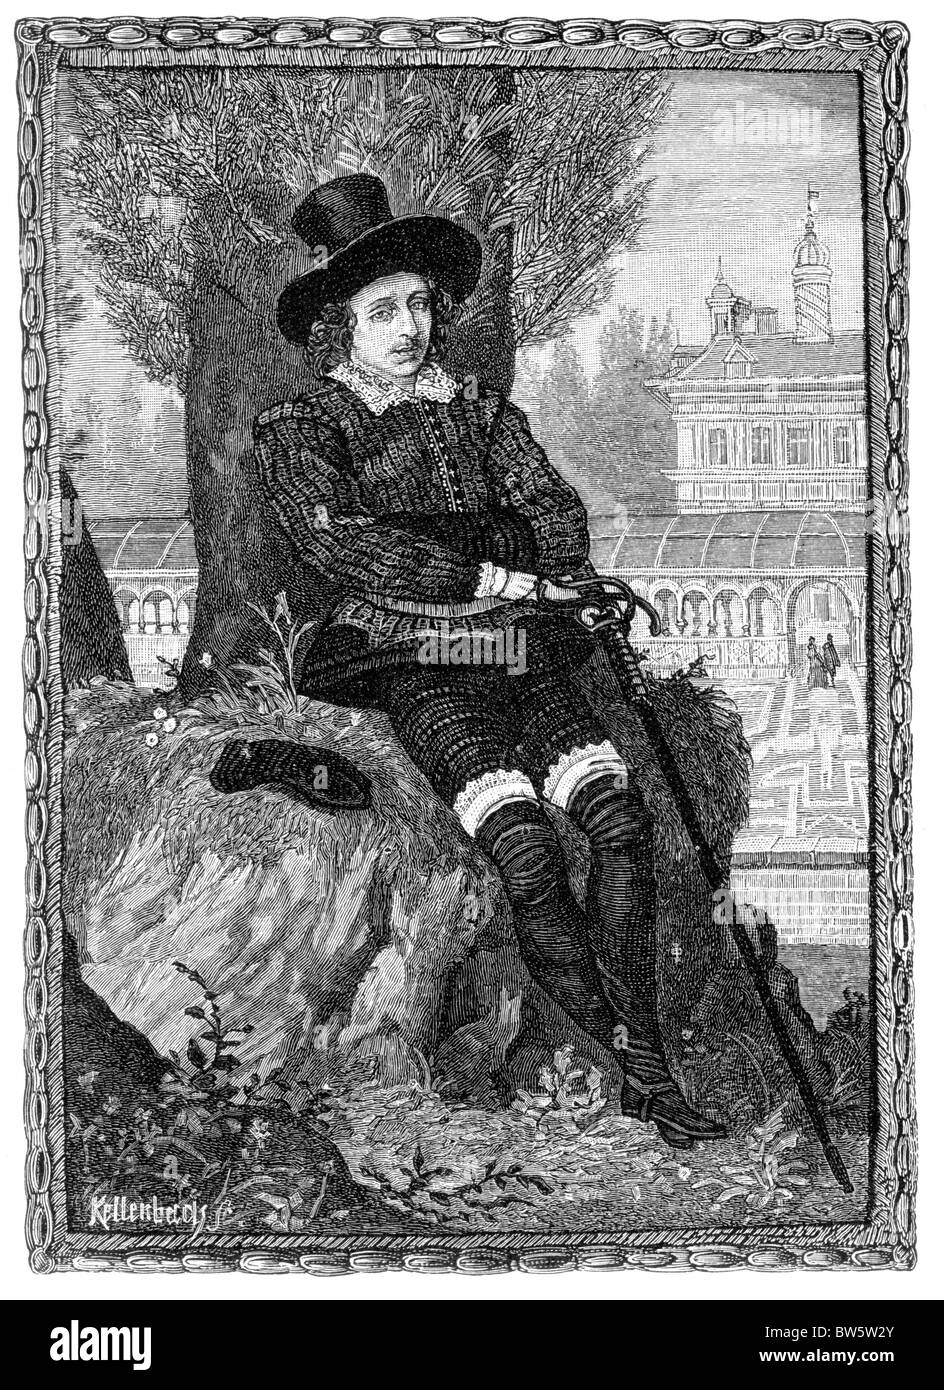 Sir Philip Sidney 16th century poet, courtier and soldier; Black and White Illustration by Isaac Oliver - Stock Image